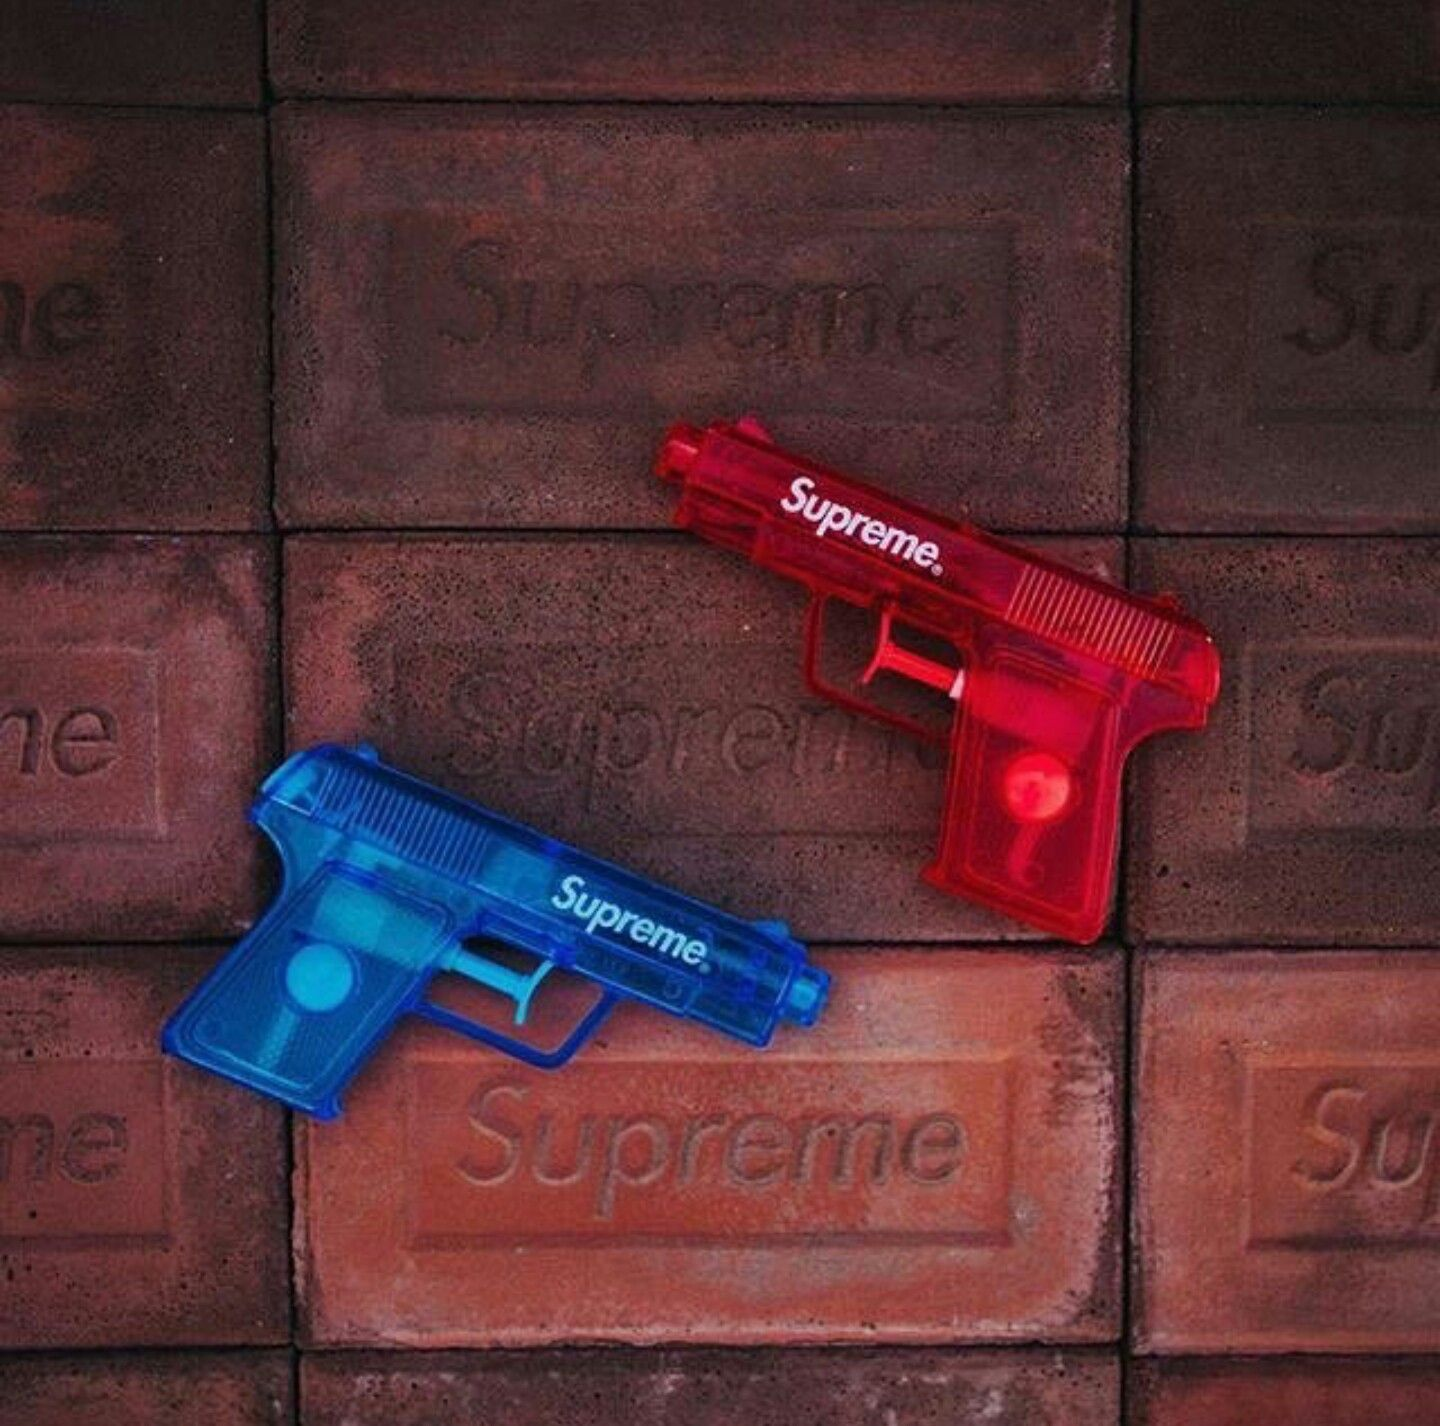 Pin by Ruben on Ruben (With images) Supreme wallpaper